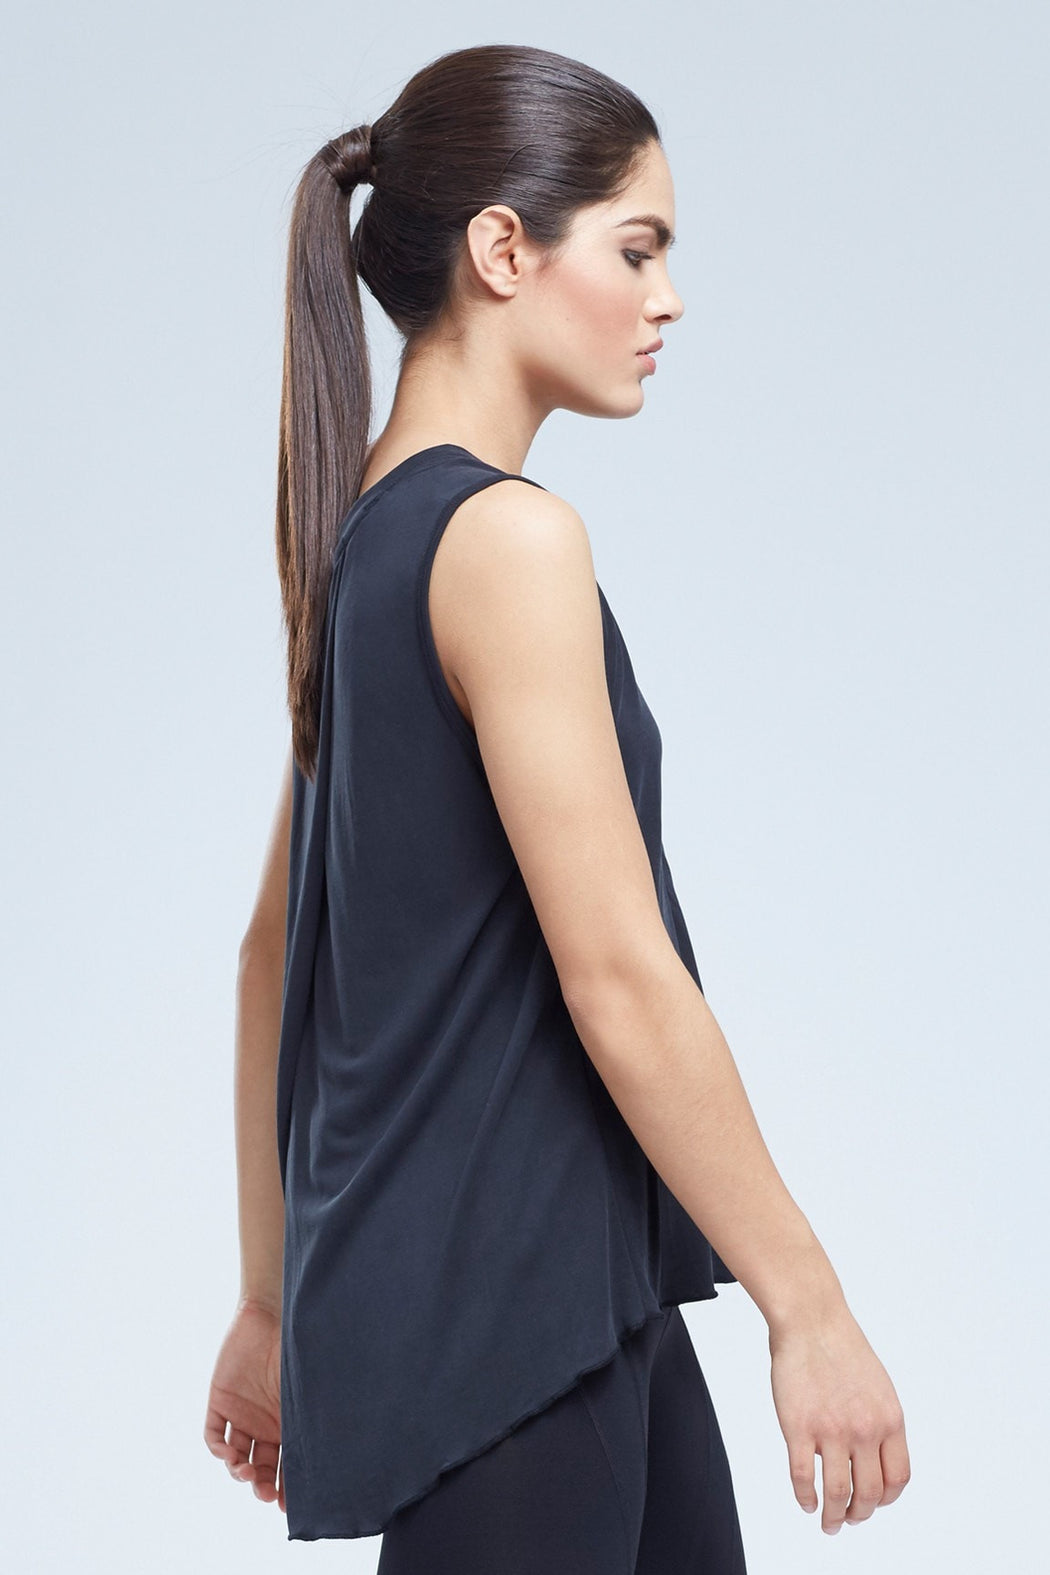 Jovi Sleeveless Muscle Top With Open Back